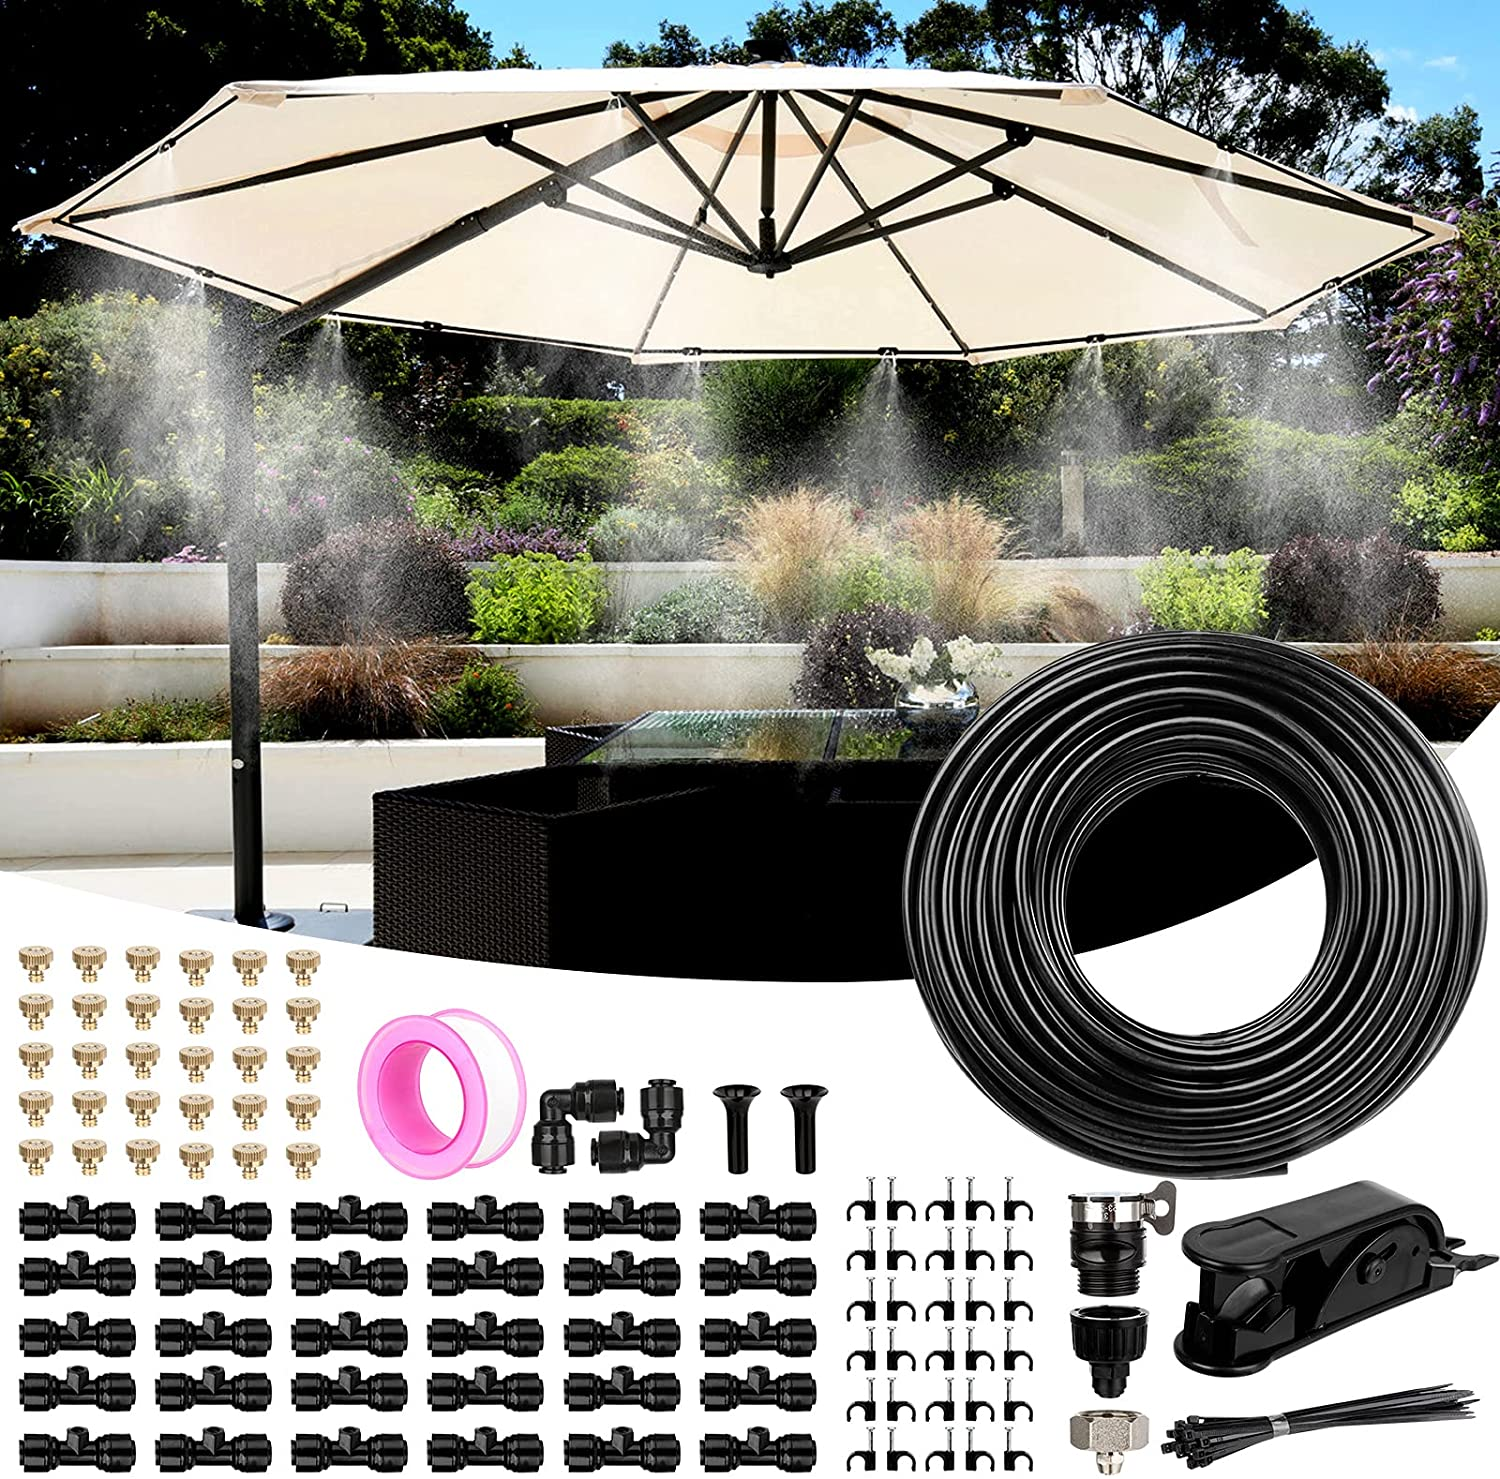 Misting Cooling System, Mist System for Patio with 82 FT(25M) PE Misting Line + 30 Mist Nozzles + 3 Faucet Adapters, Outdoor Water Mister Kit for Garden, Porch, Fan, Canopy, Backyard, Waterpark